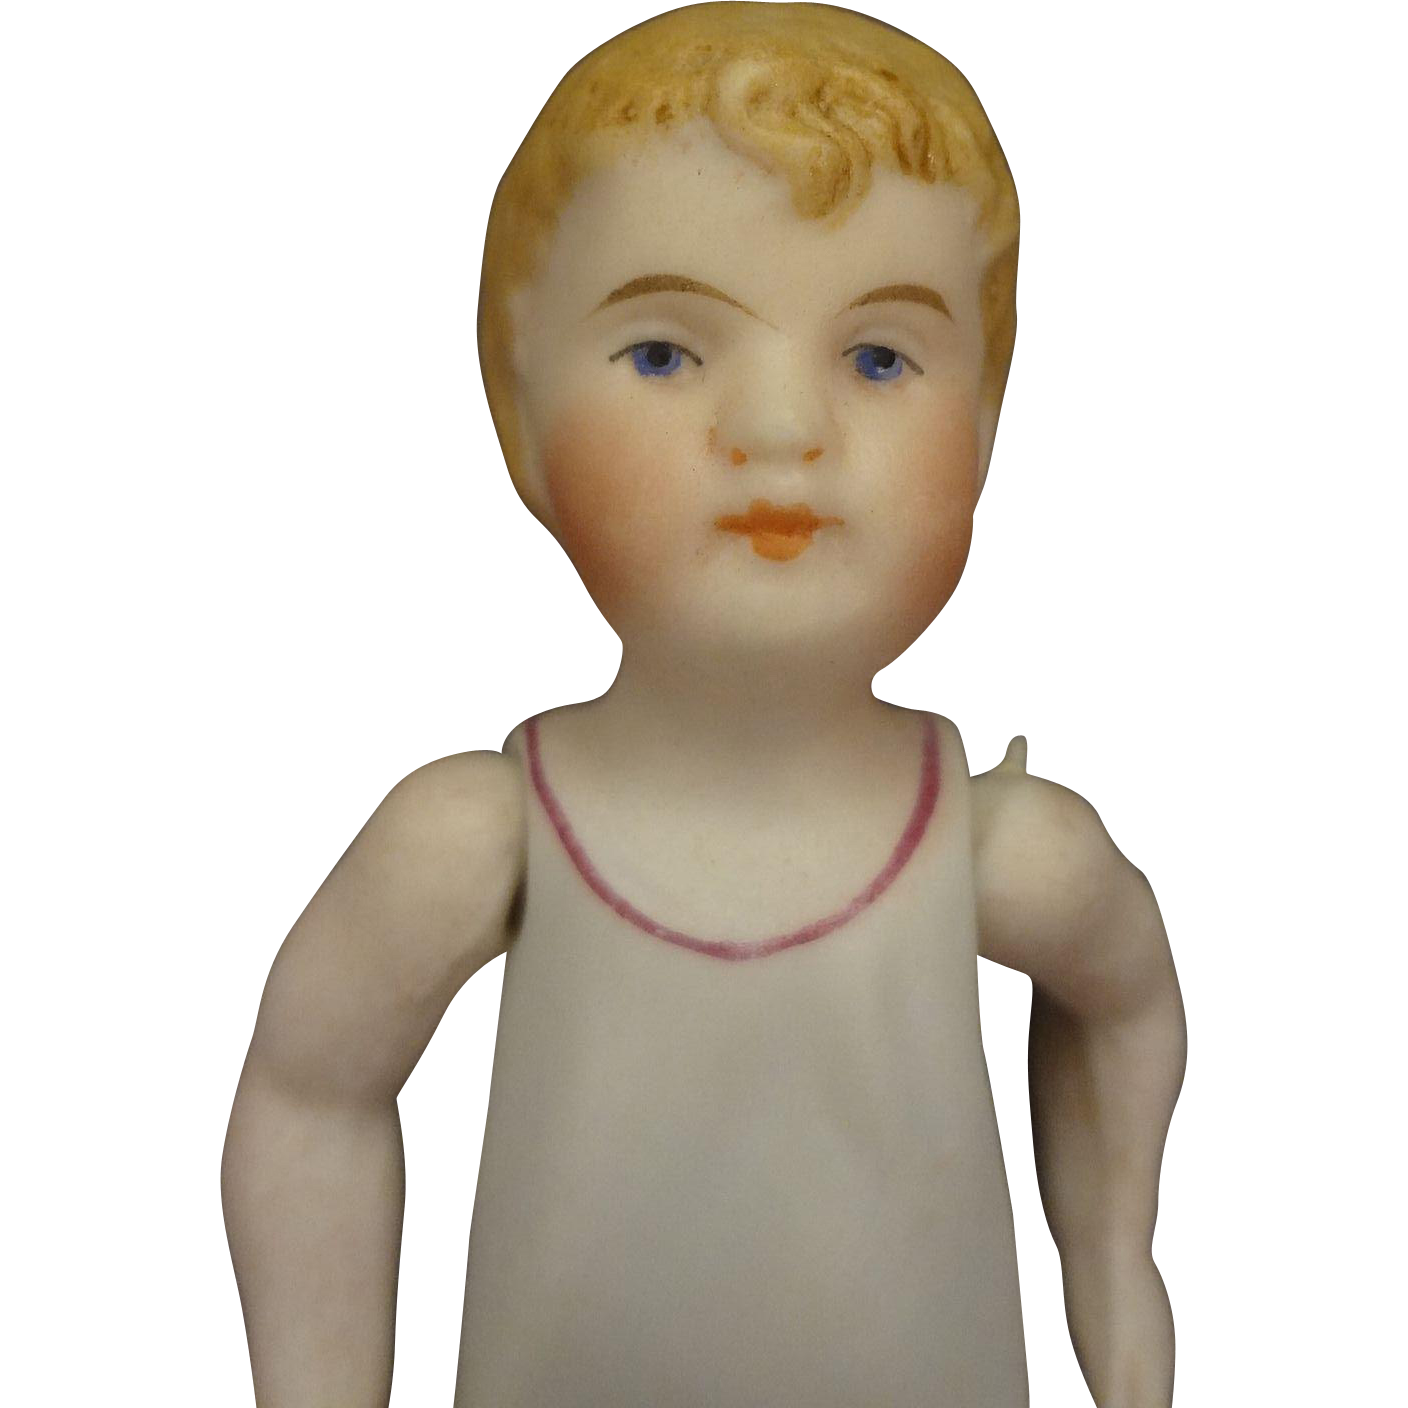 All Bisque Boy with Molded Nightshirt and Blonde Molded Hair